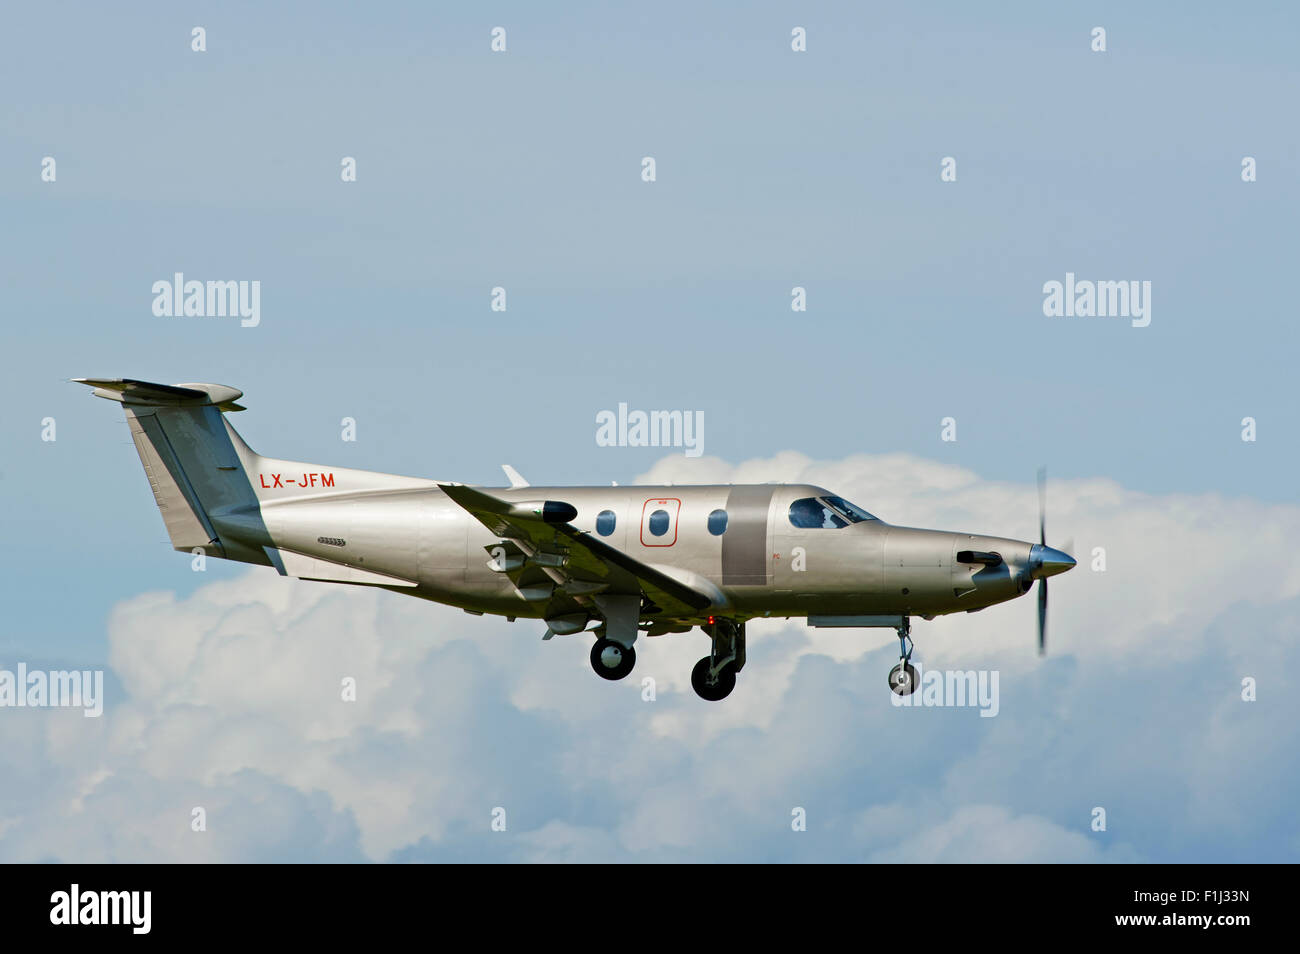 Pilatus PC-12NG (PC-12/47E) Luxembourg registered (LX-JFM) arriving at Inverness Scotland.  SCO 10,073. - Stock Image